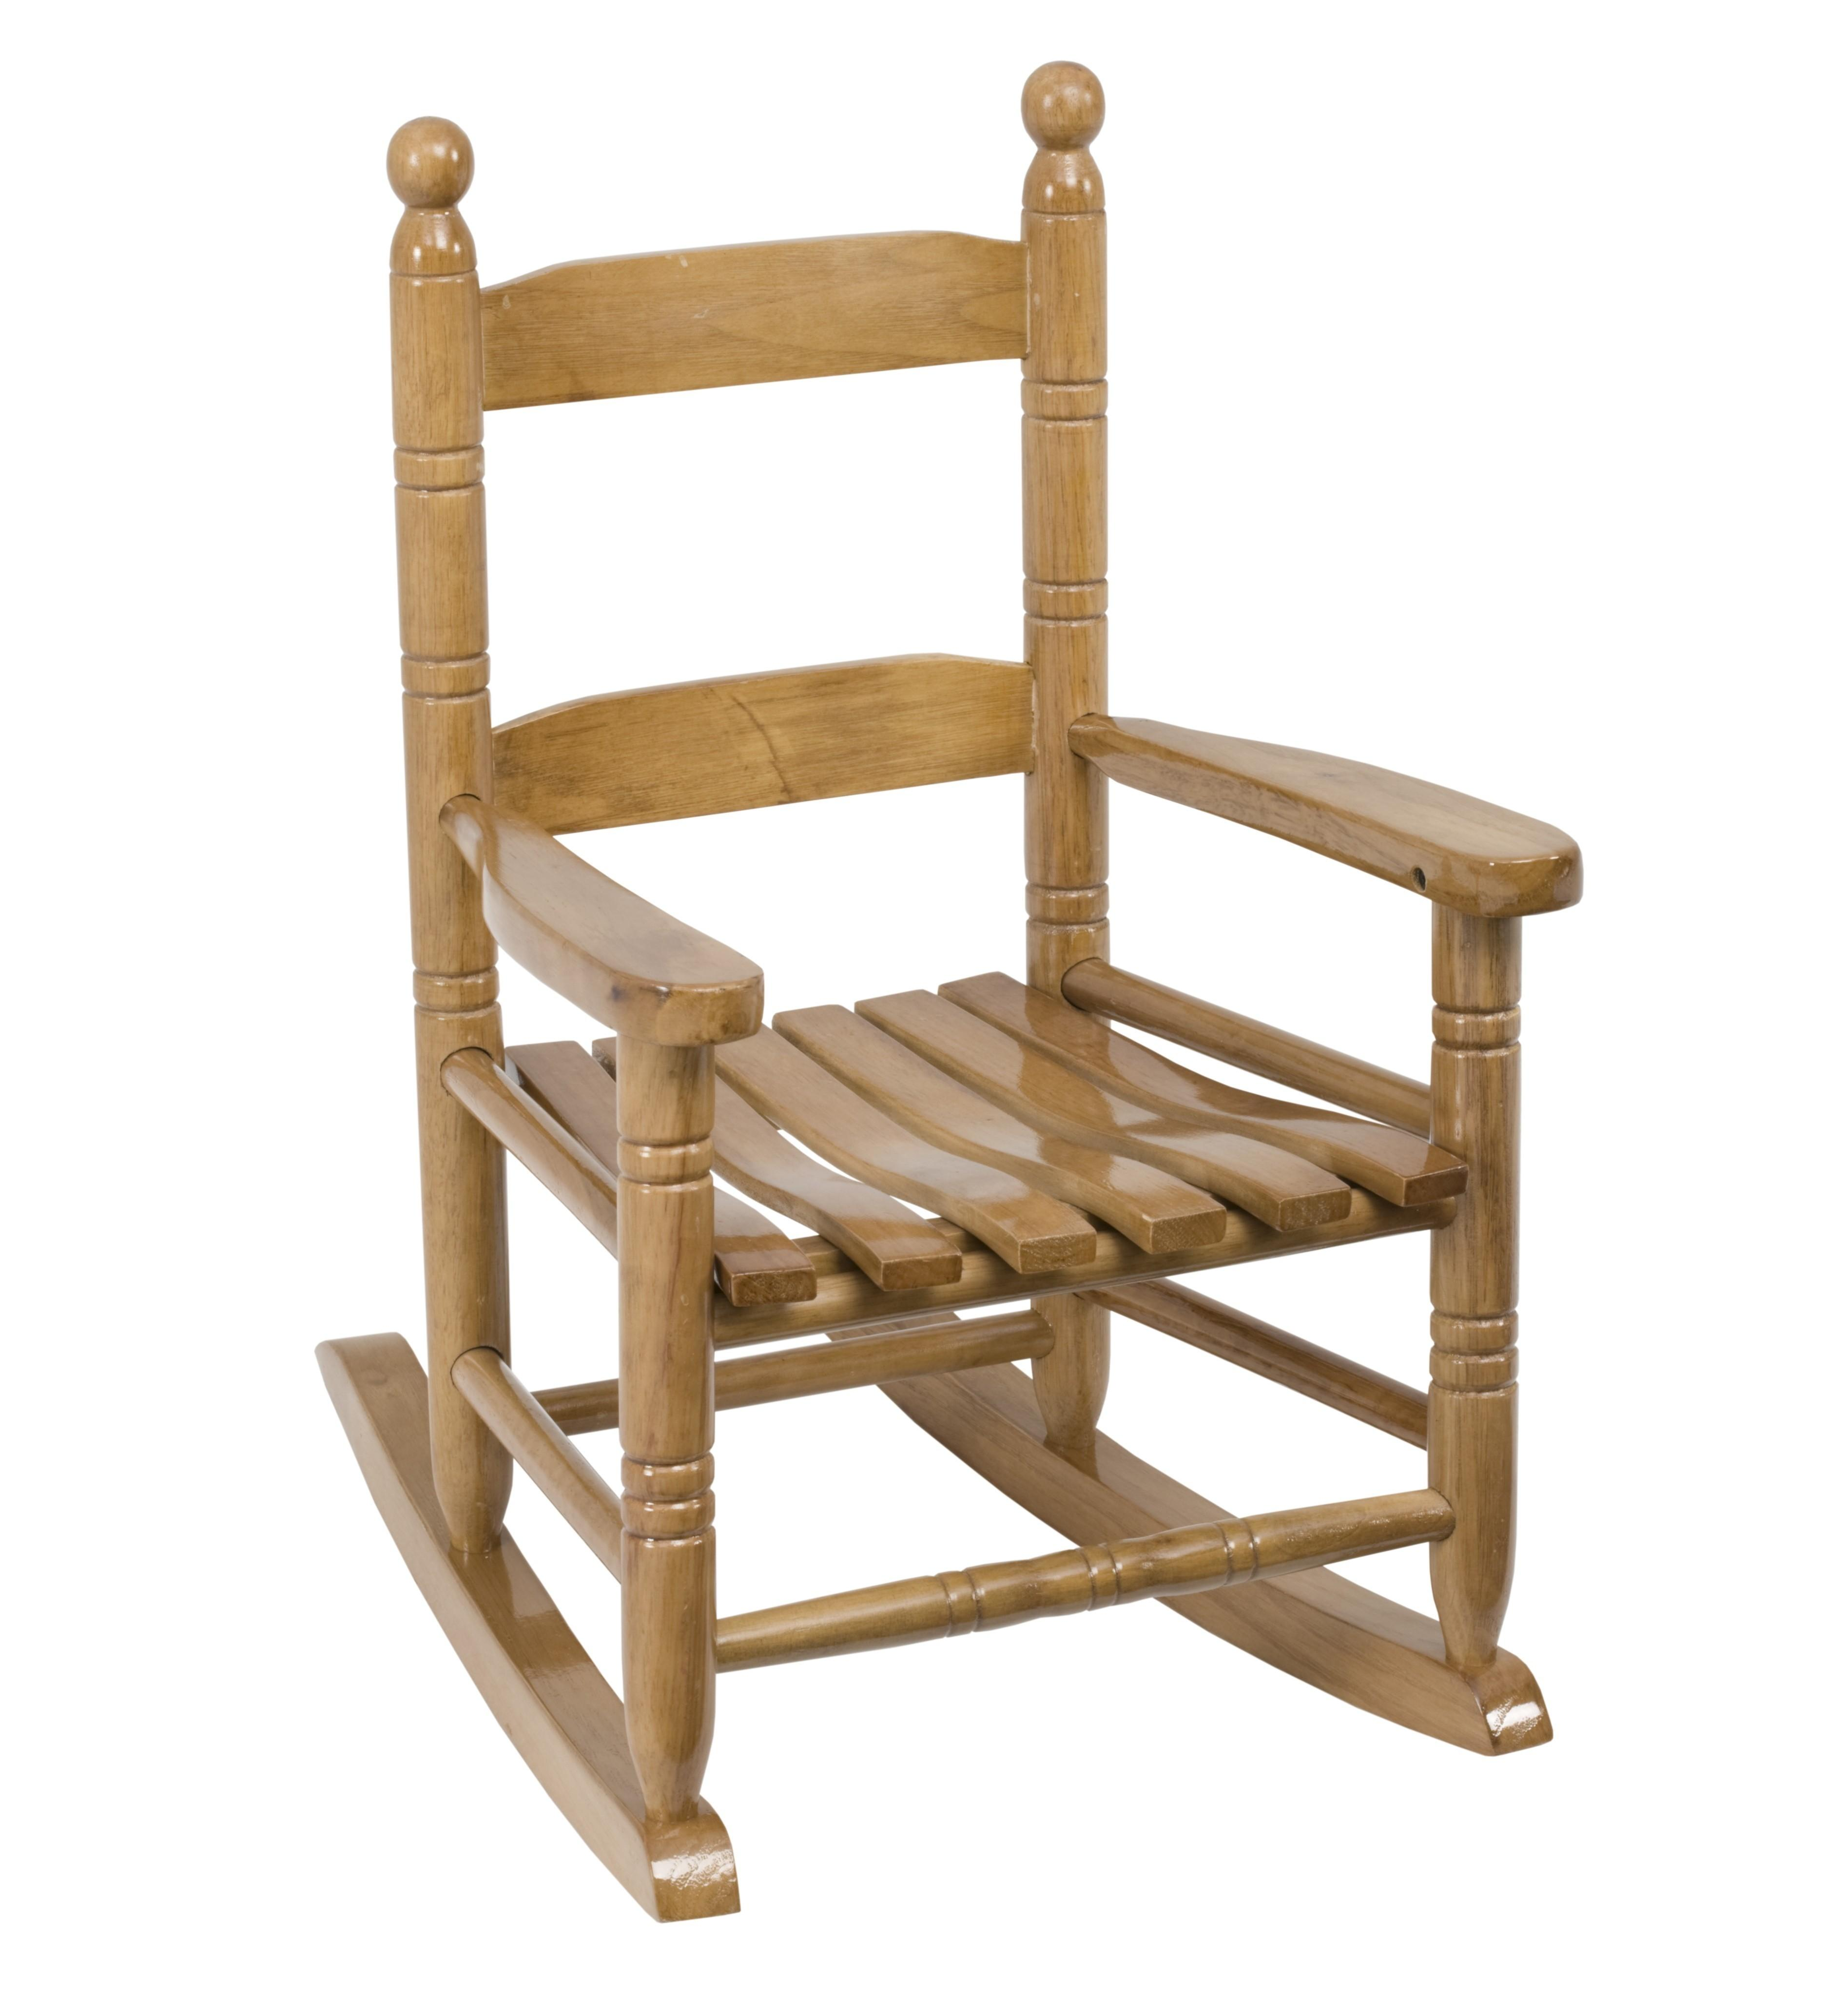 Jack Post Natural Childrens Rocking Chair Kn10n